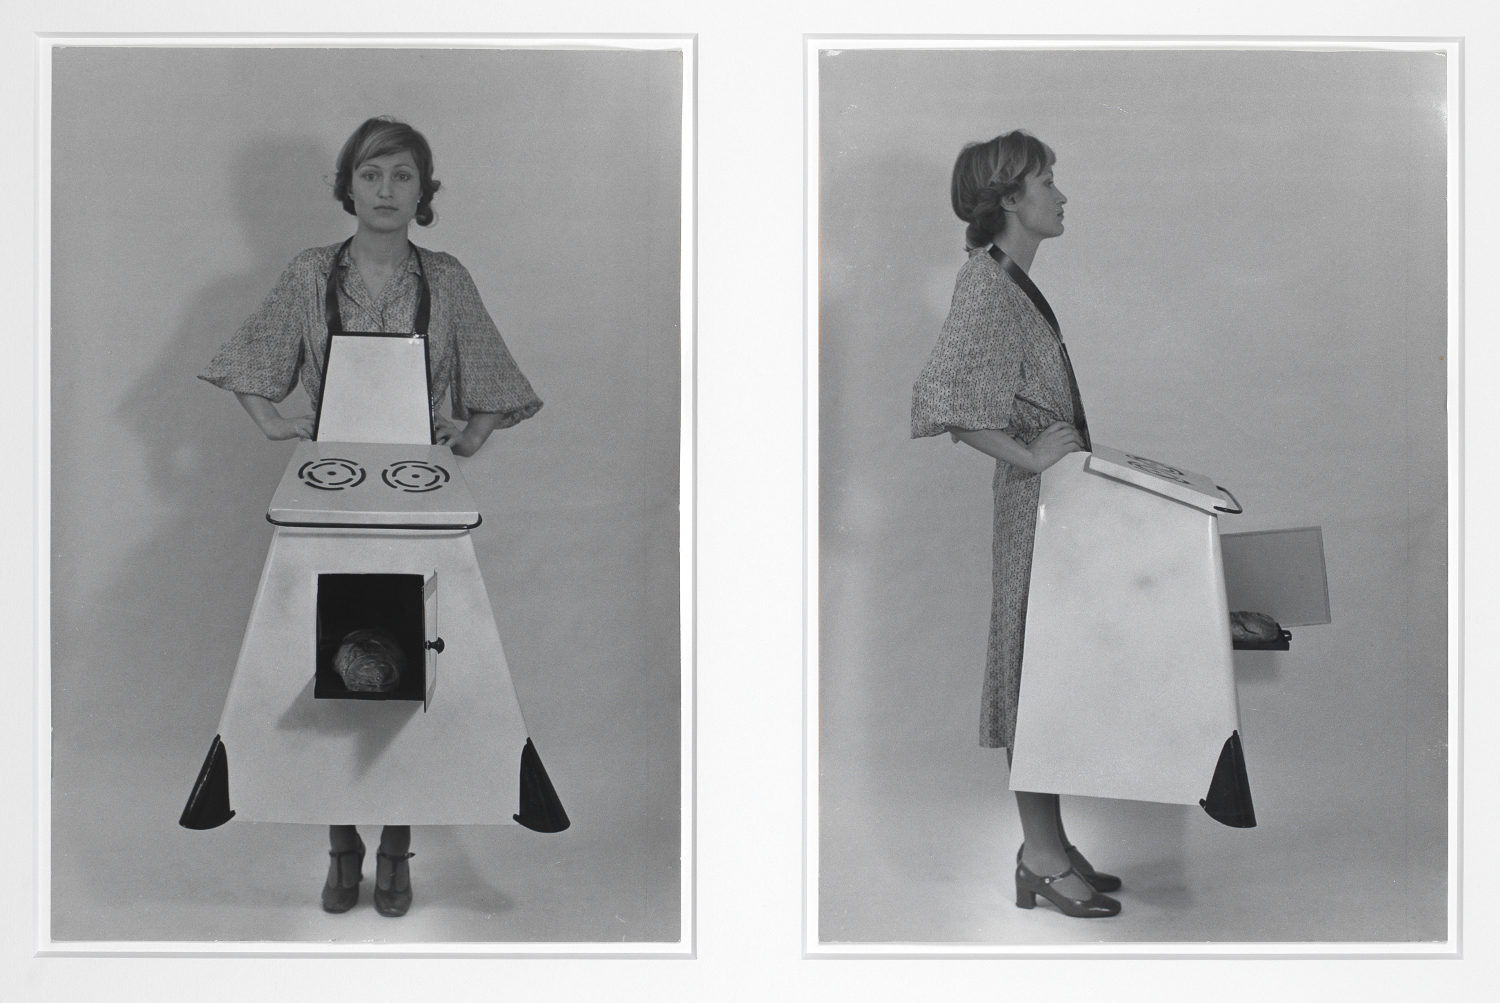 brigit-jurgenssen_hausfrauen-kuchenschurze-housewives-kitchen-apron_1975_aware_womenartists_artistesfemmes-1500x1003